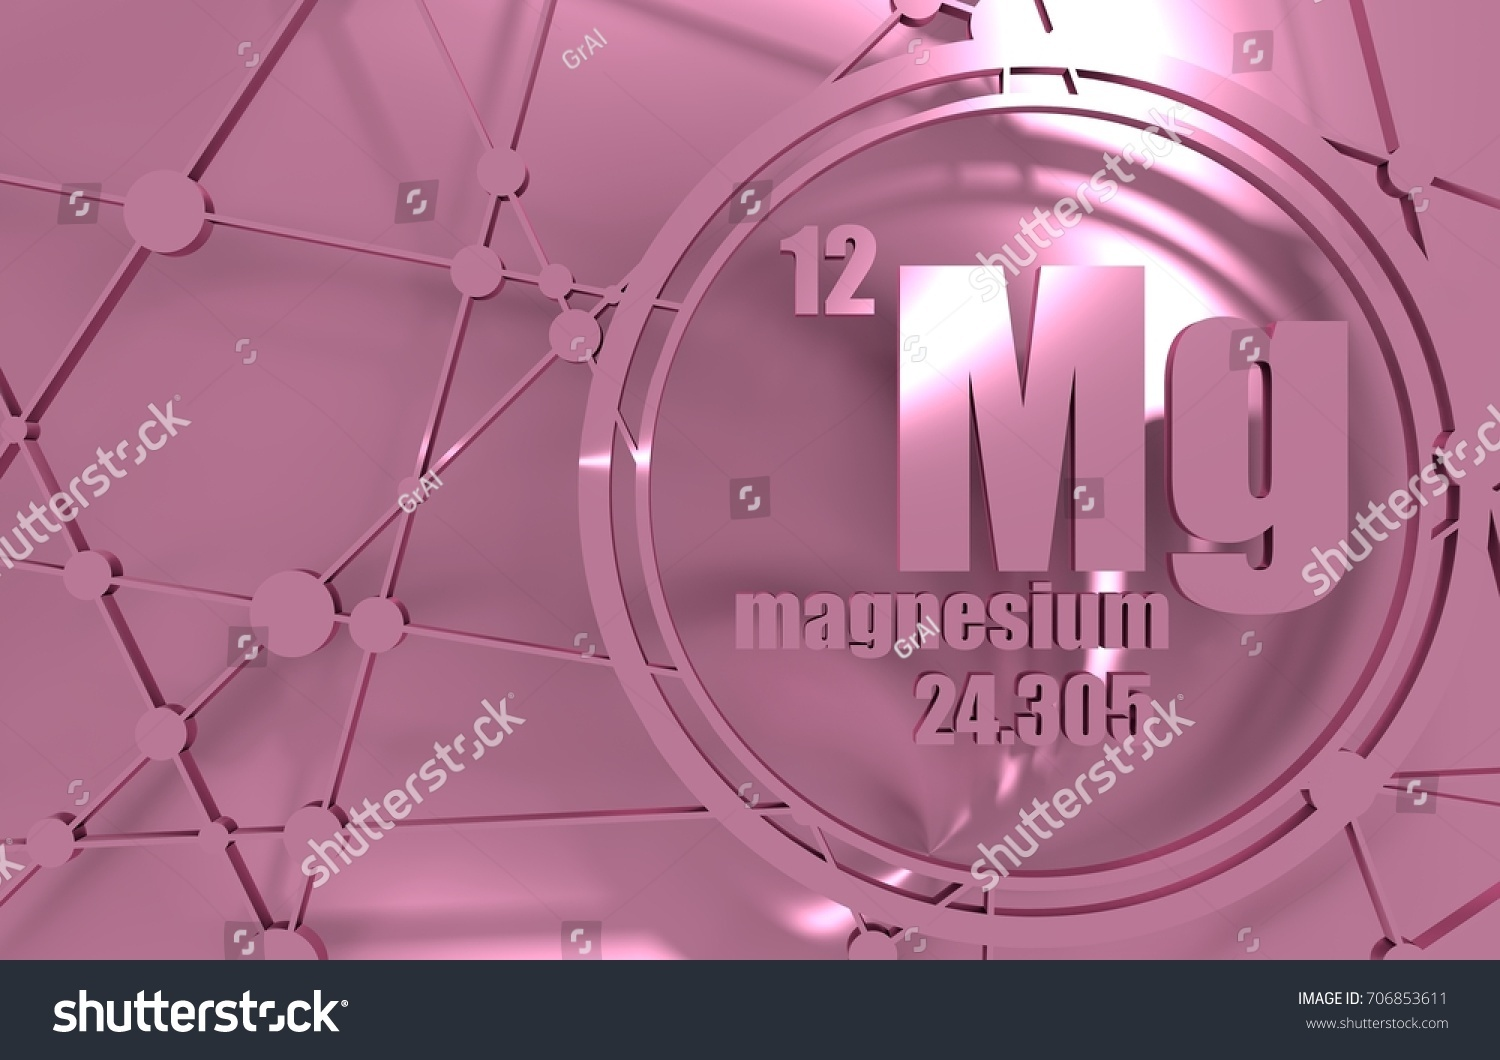 Magnesium chemical element sign atomic number stock illustration magnesium chemical element sign atomic number stock illustration 706853611 shutterstock urtaz Gallery